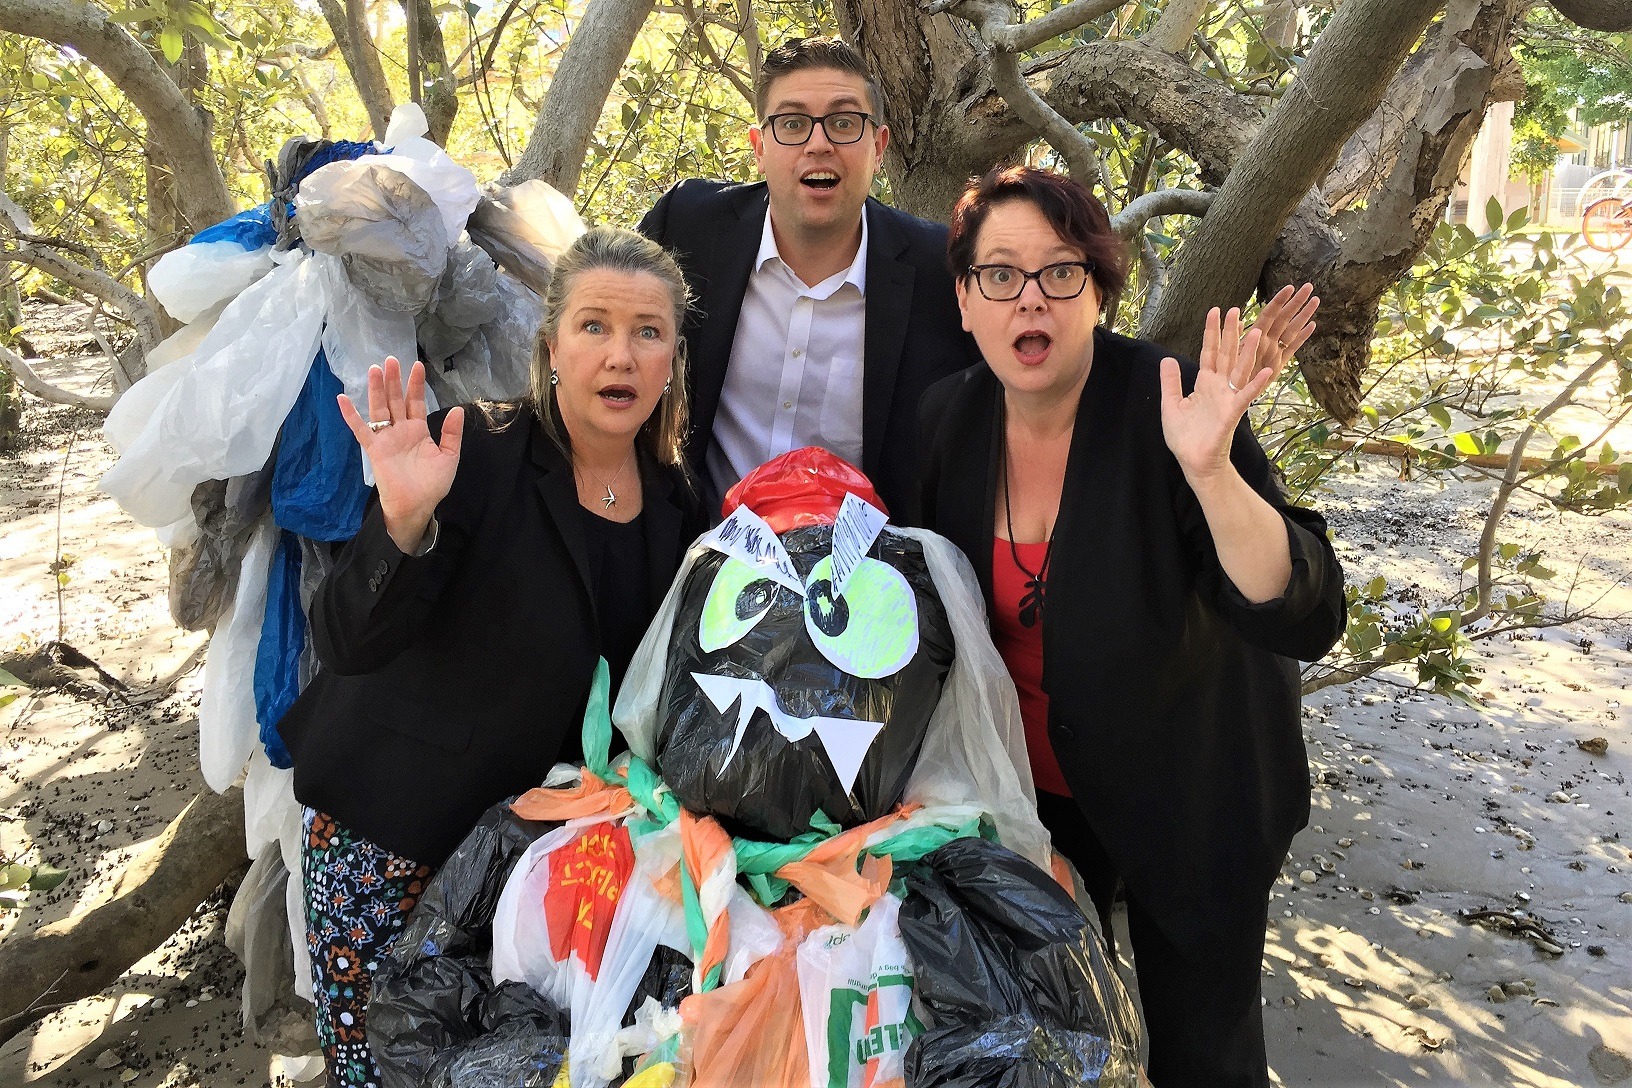 Plastic bags farce continues thanks to Berejiklian Government failing to ban the bag - Labor to reintroduce its bill in Parliament